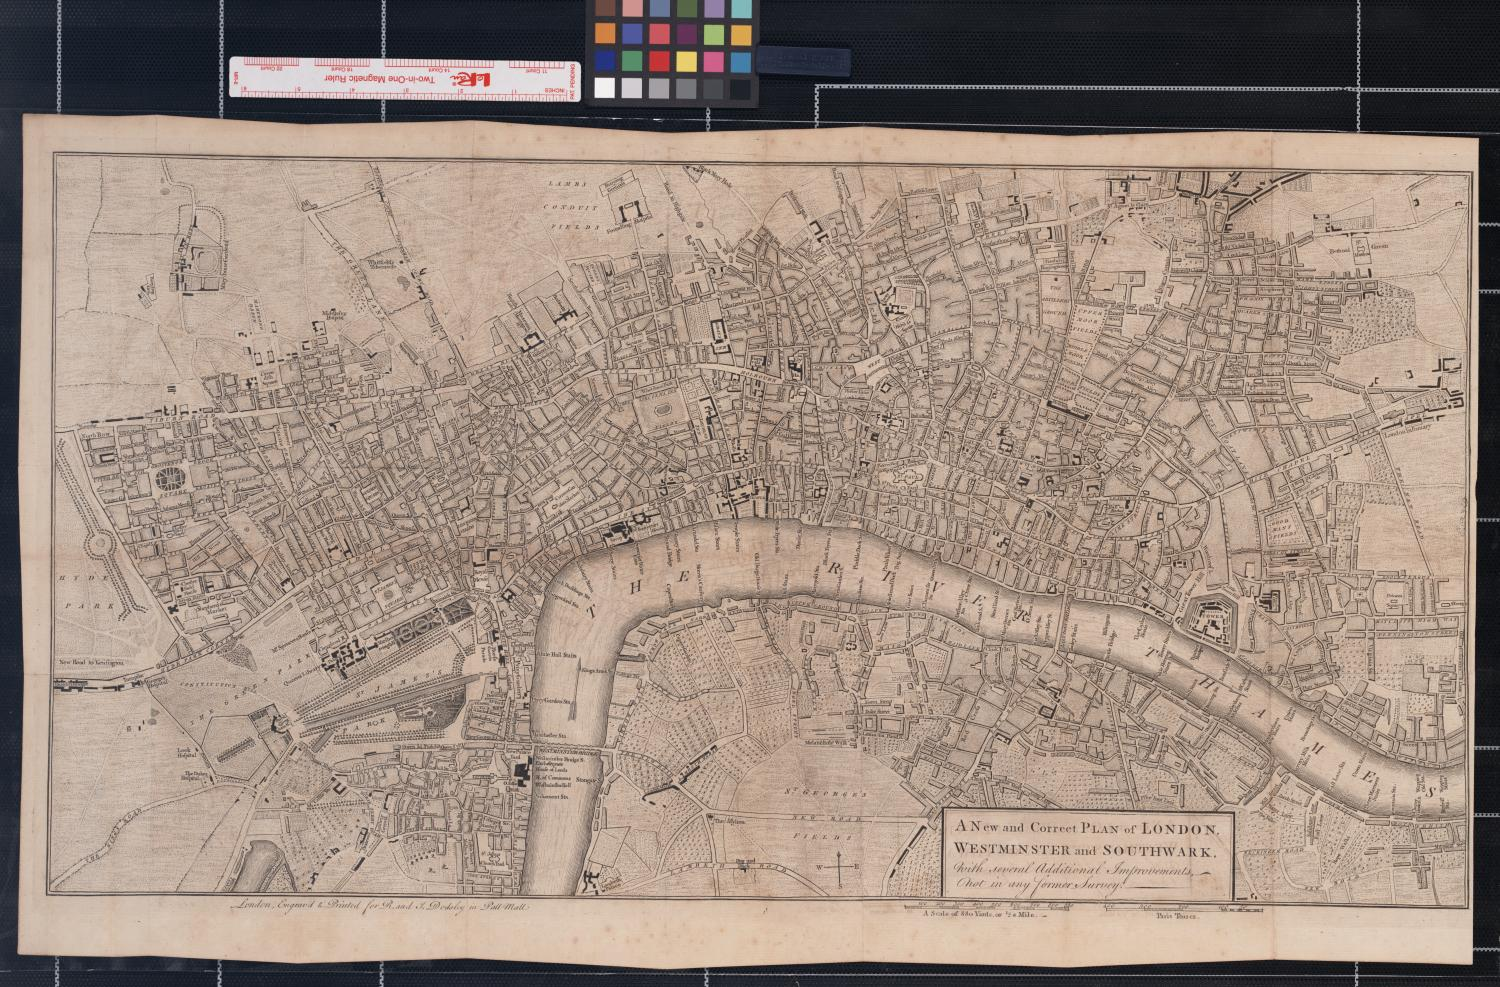 A New and Correct Plan of London, Westminster and Southwark, with several Additional Improvements, not in any former Survey.                                                                                                      [Sequence #]: 1 of 1